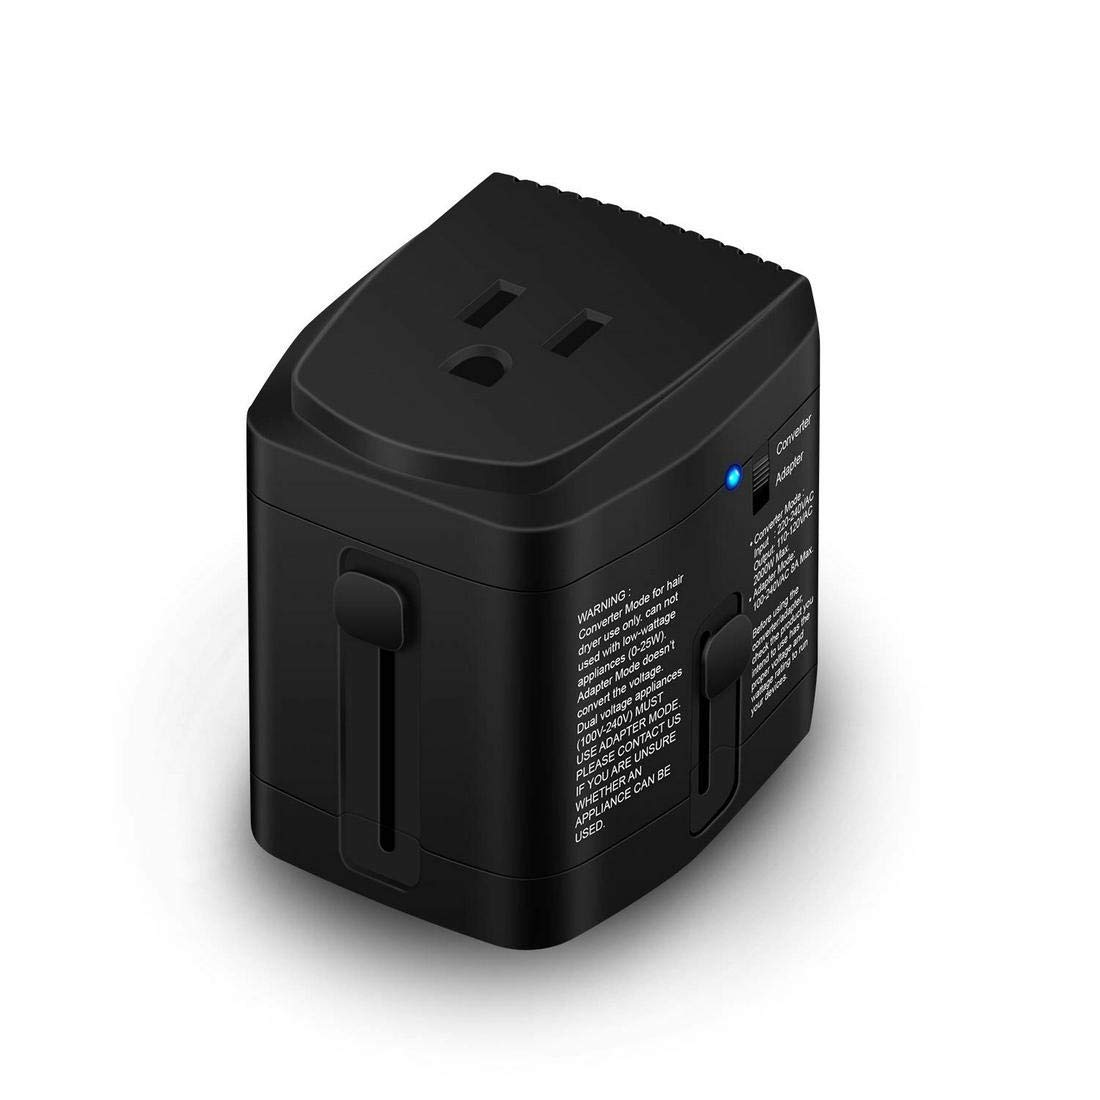 All in ONE World Travel Plug Power Adapter 2000 Watts Voltage Converter  Step Down 220V to 110V for Hair Dryer Steam Iron Laptop MacBook Cell Phone  -